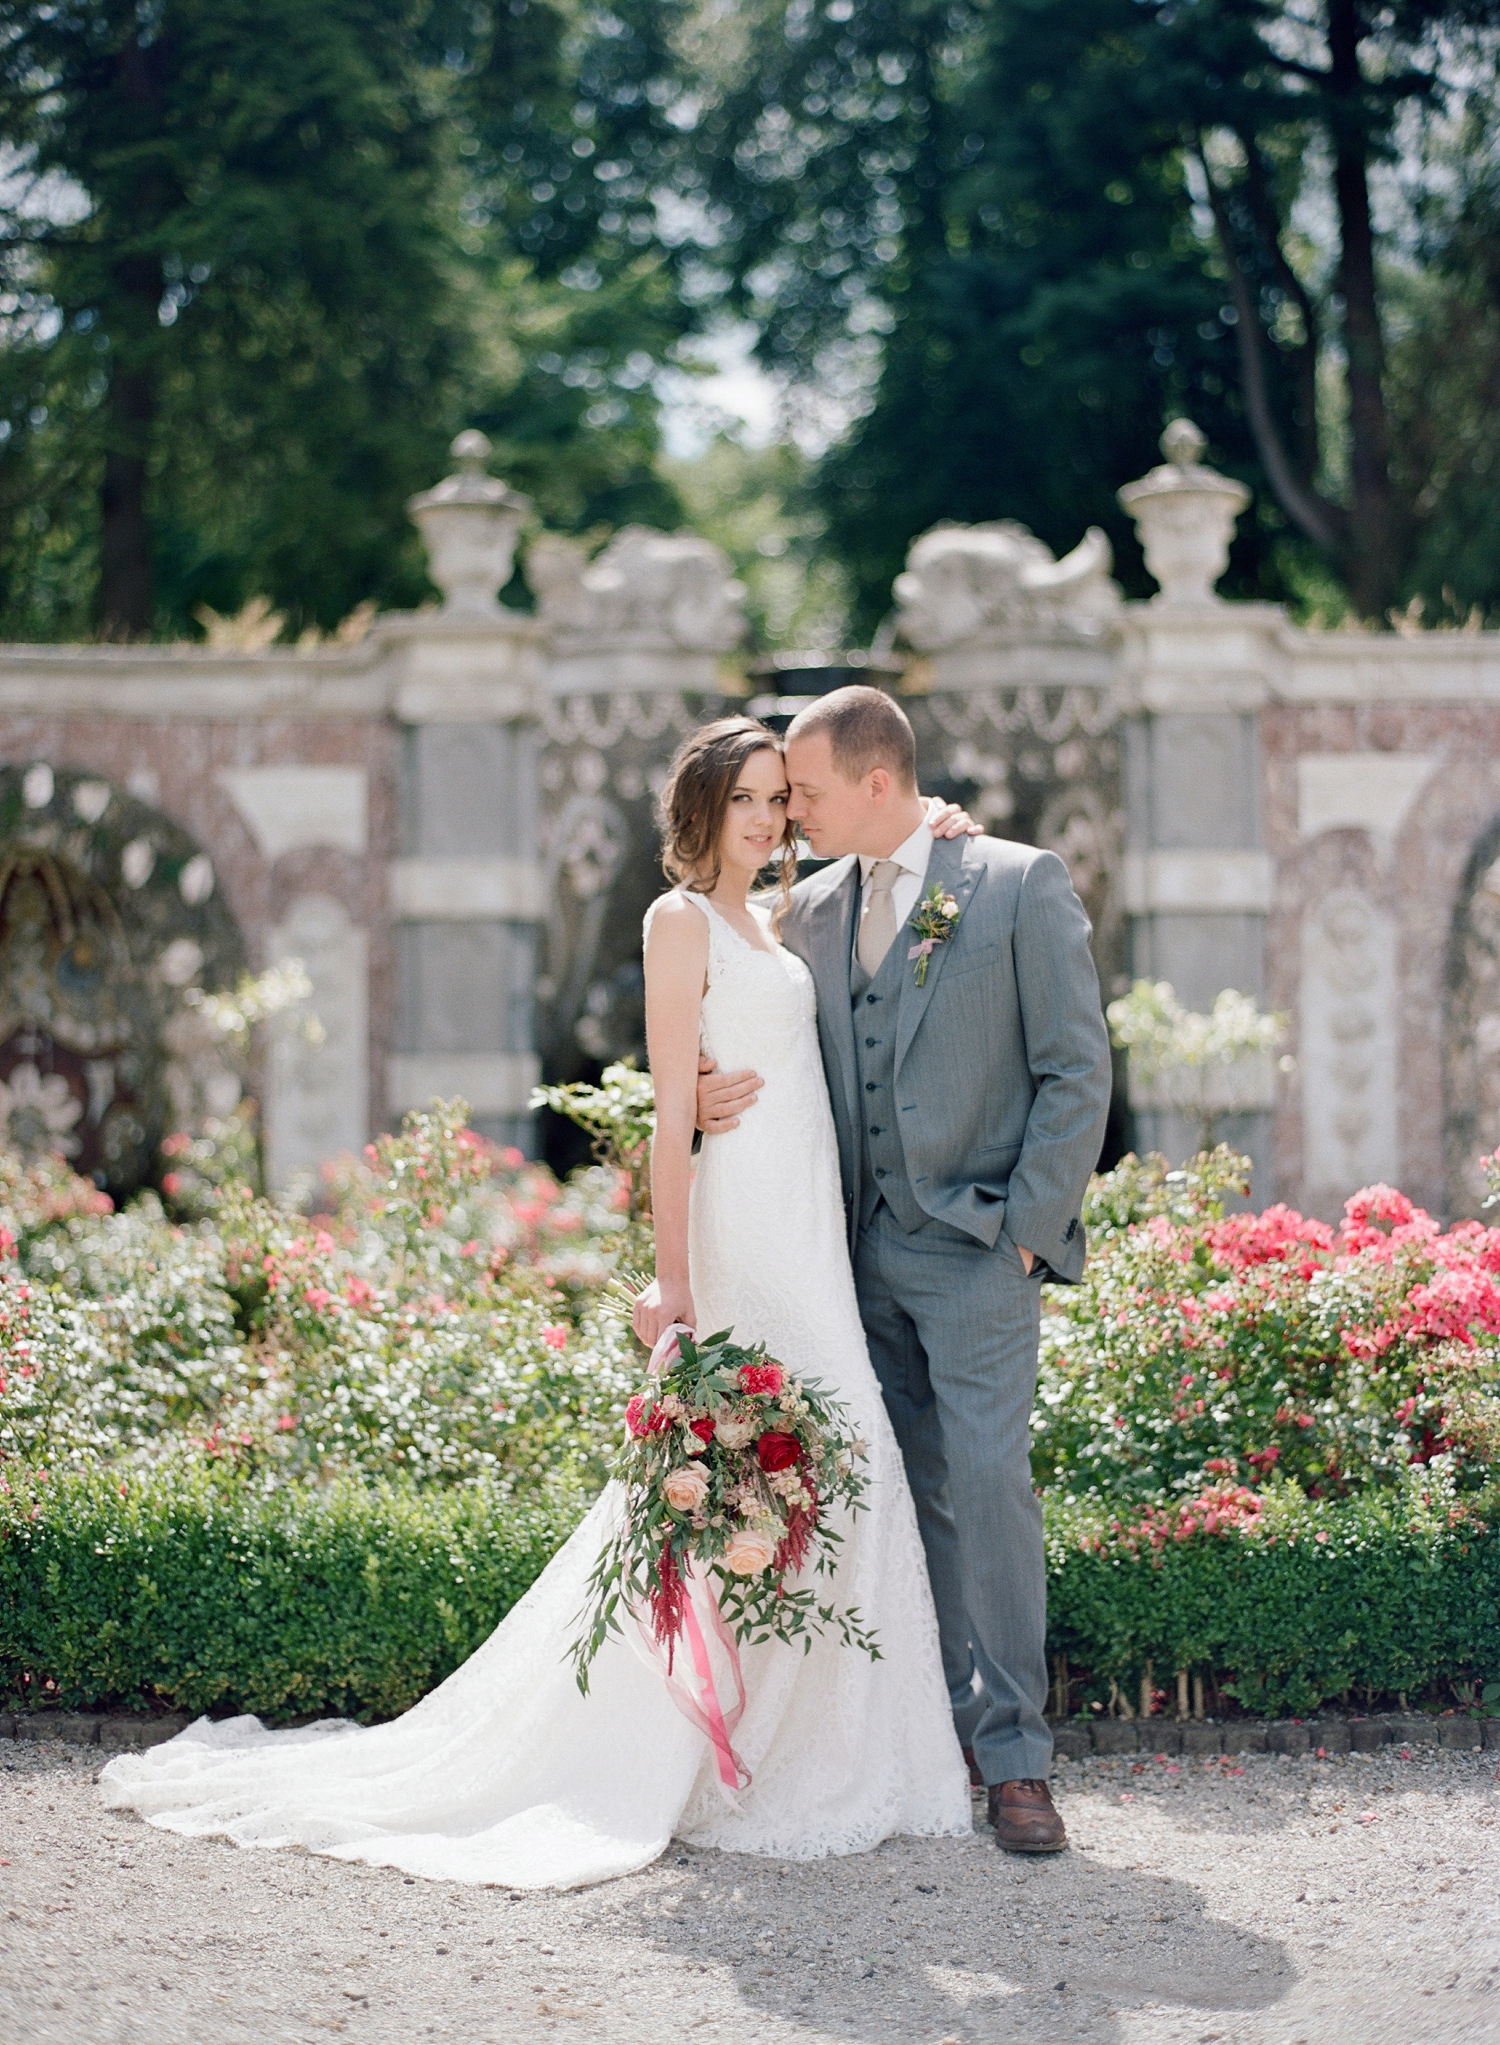 kasteel rosendael wedding editorial